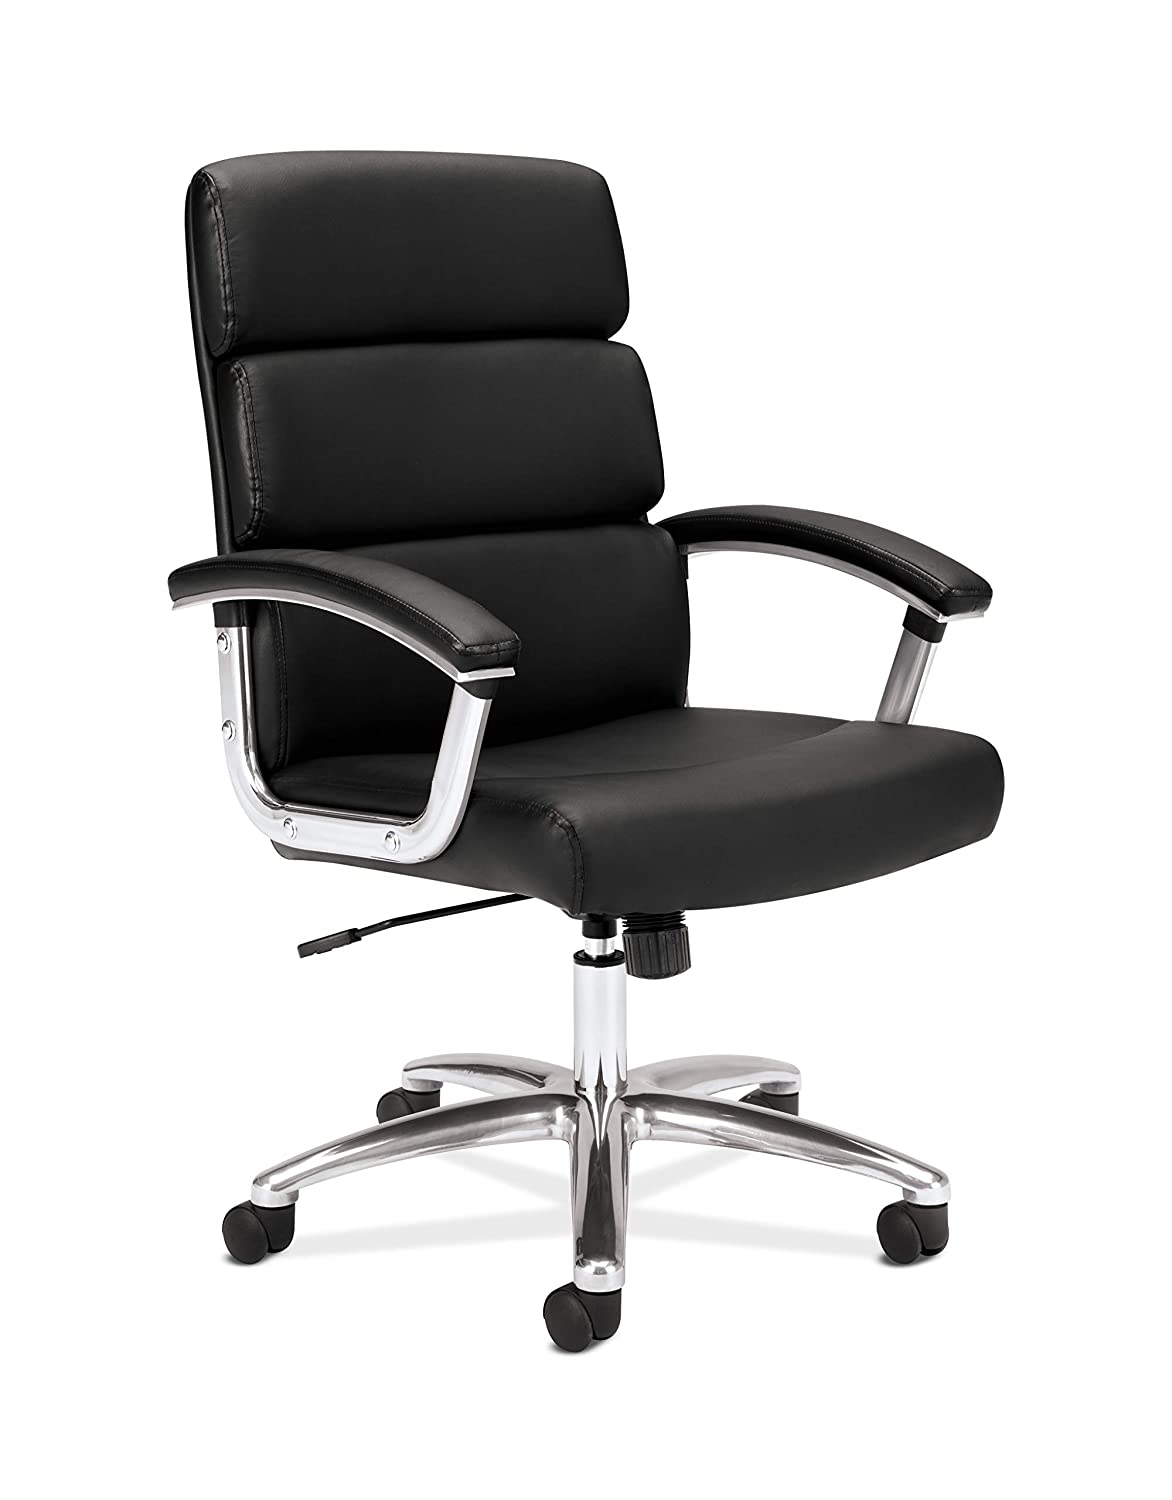 HON Traction Executive Task Chair - Mid Back Leather Computer Chair for Office Desk, Black (VL103)